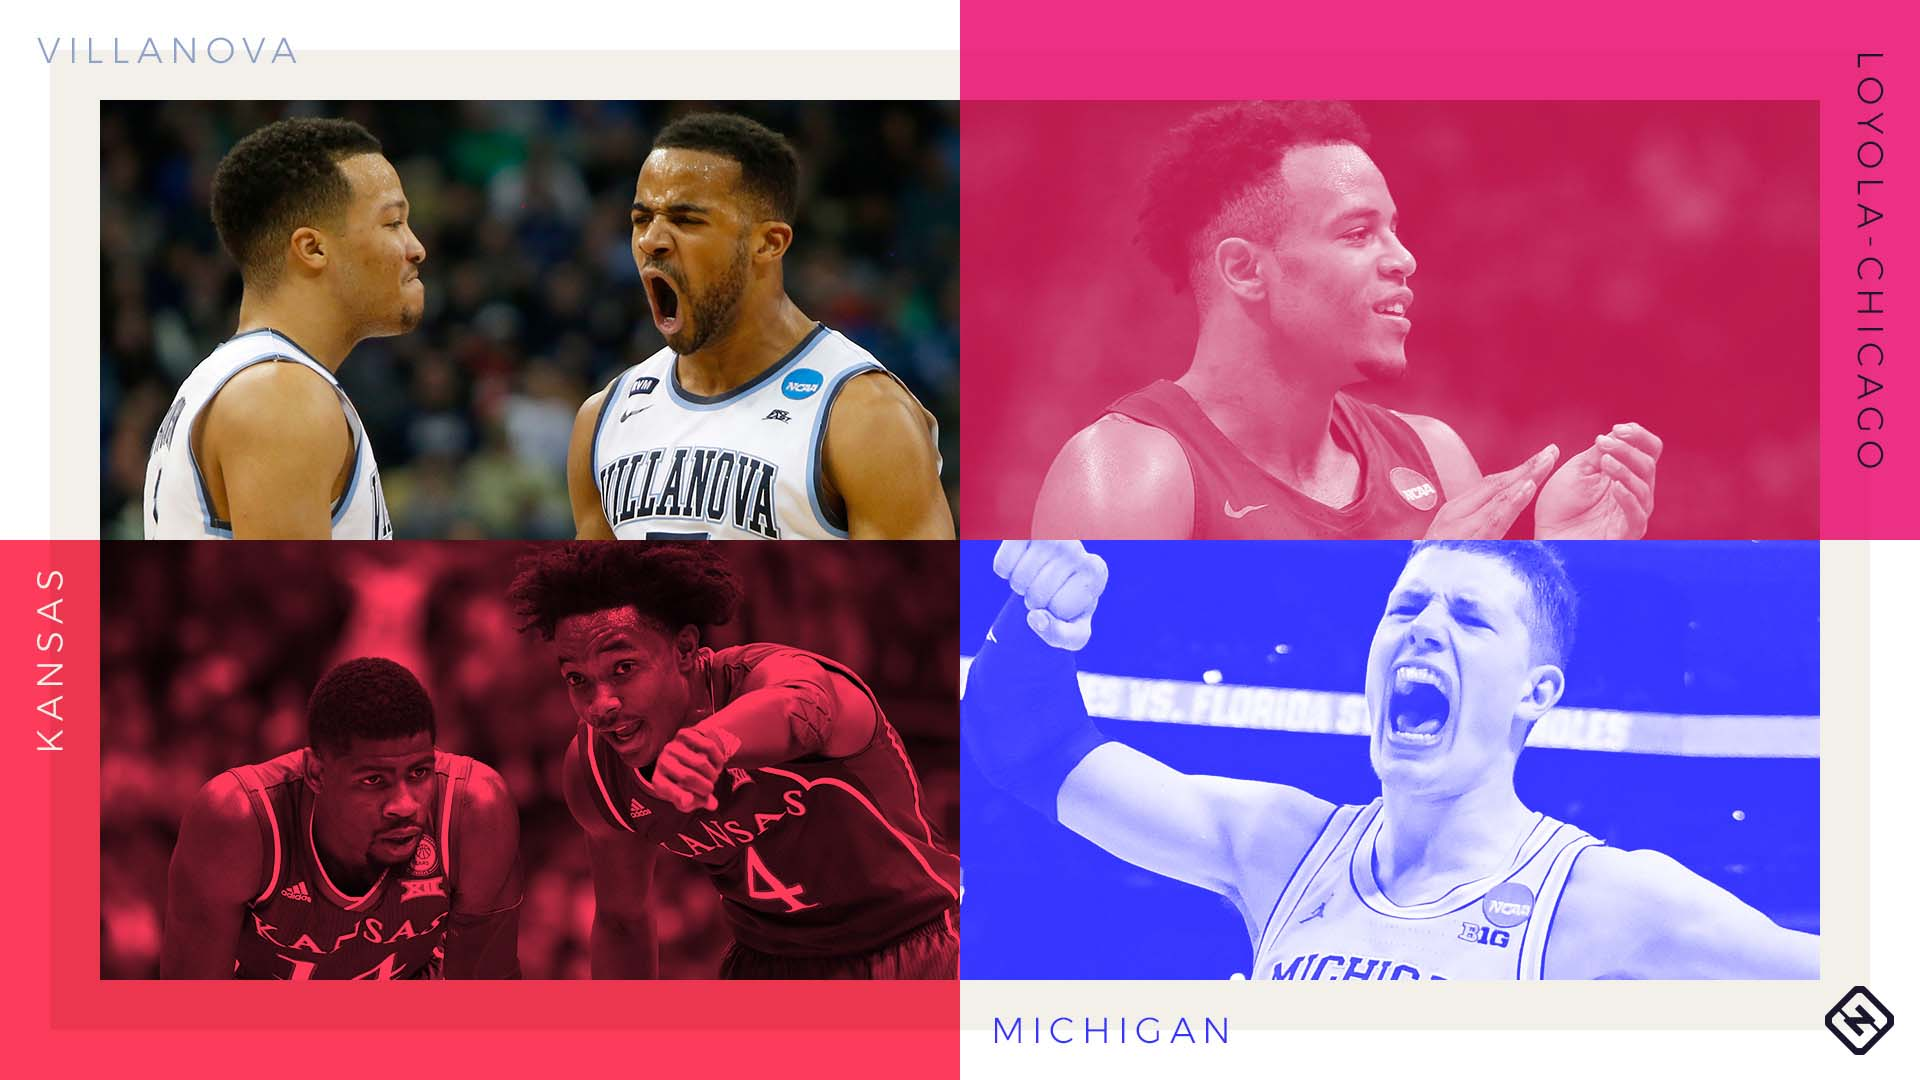 March Madness scores, highlights from Saturday's NCAA Tournament games